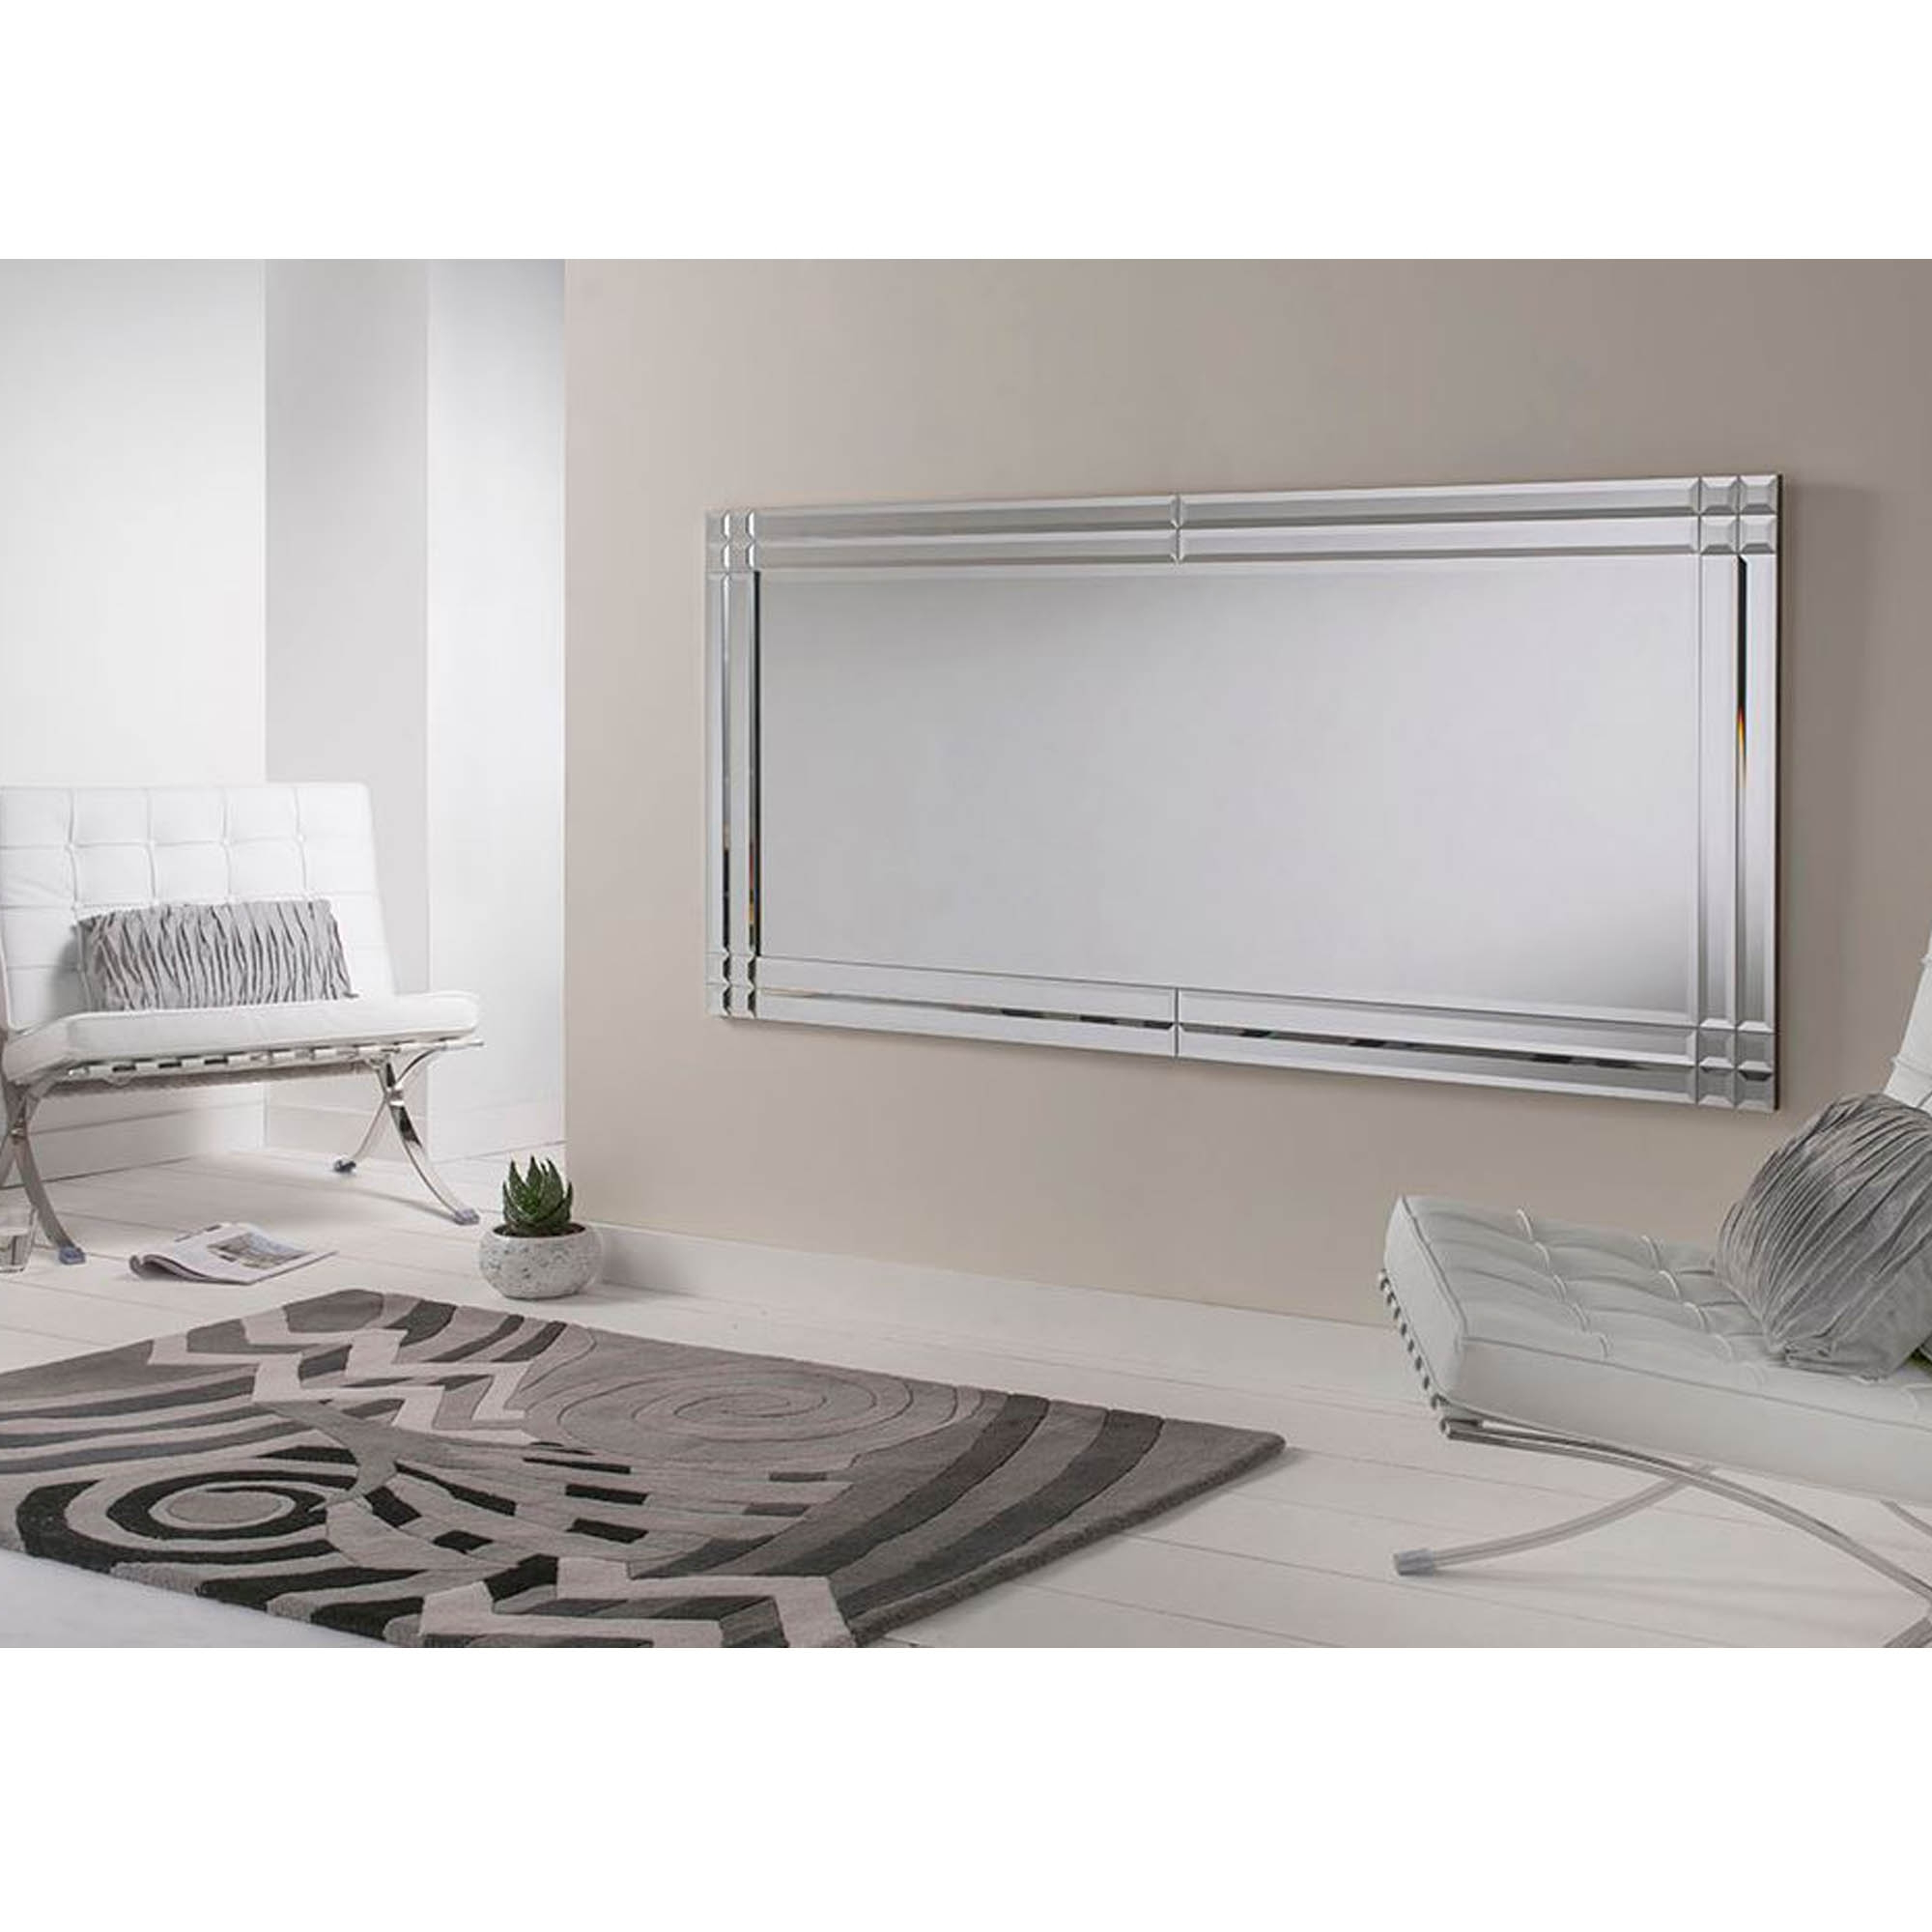 Large Glass Bevelled Wall Mirrors Regarding Widely Used Large Bevelled Rectangular Wall Mirror (View 2 of 20)